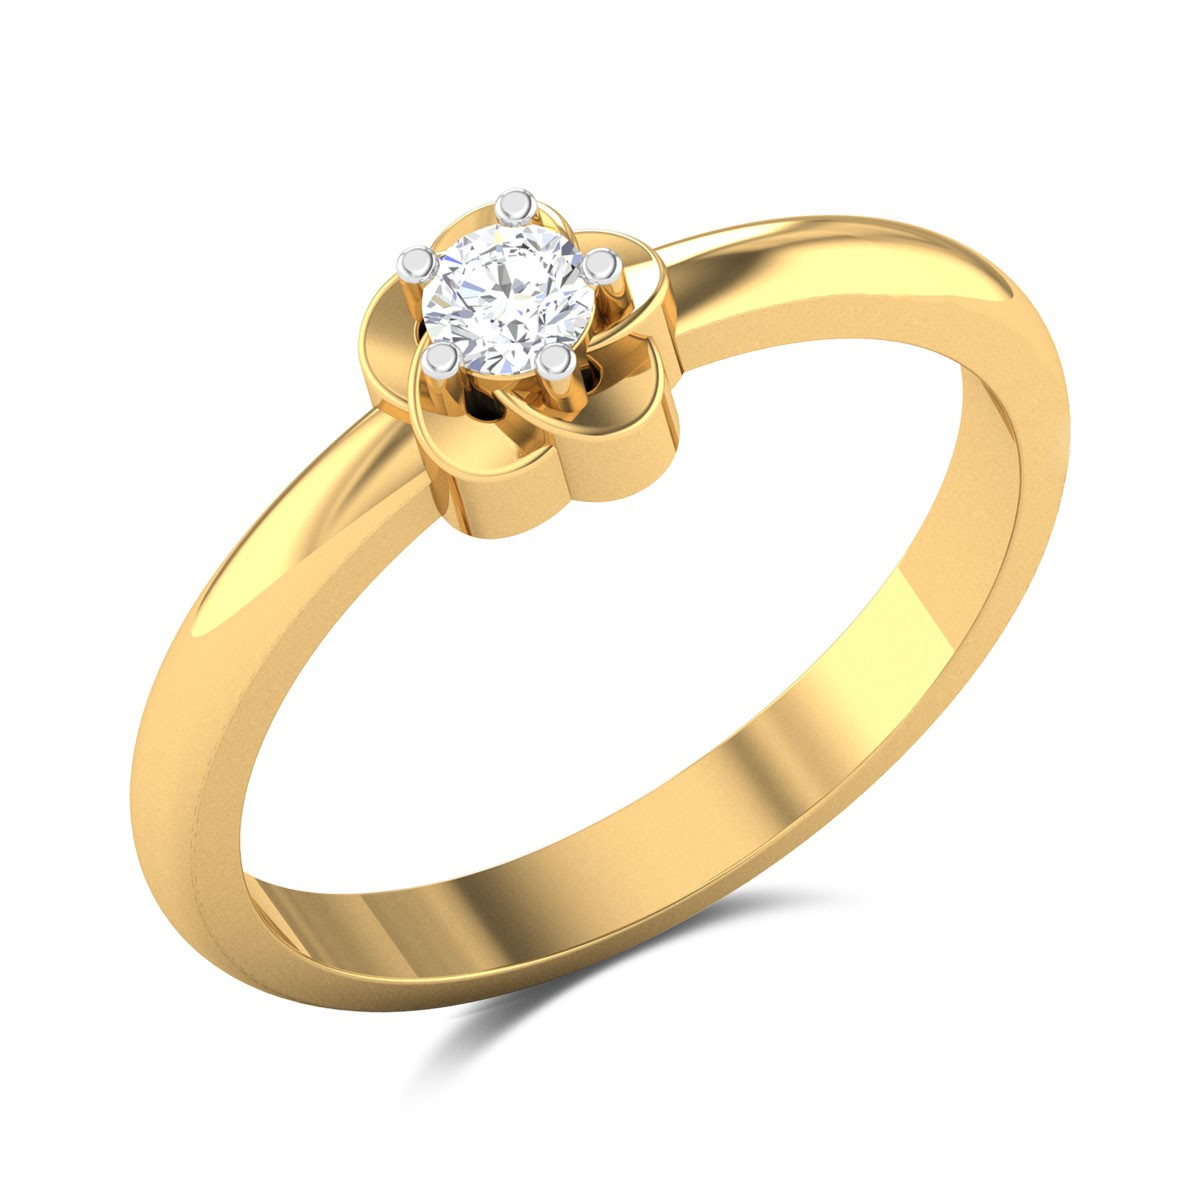 Shannon Floral Diamond Ring